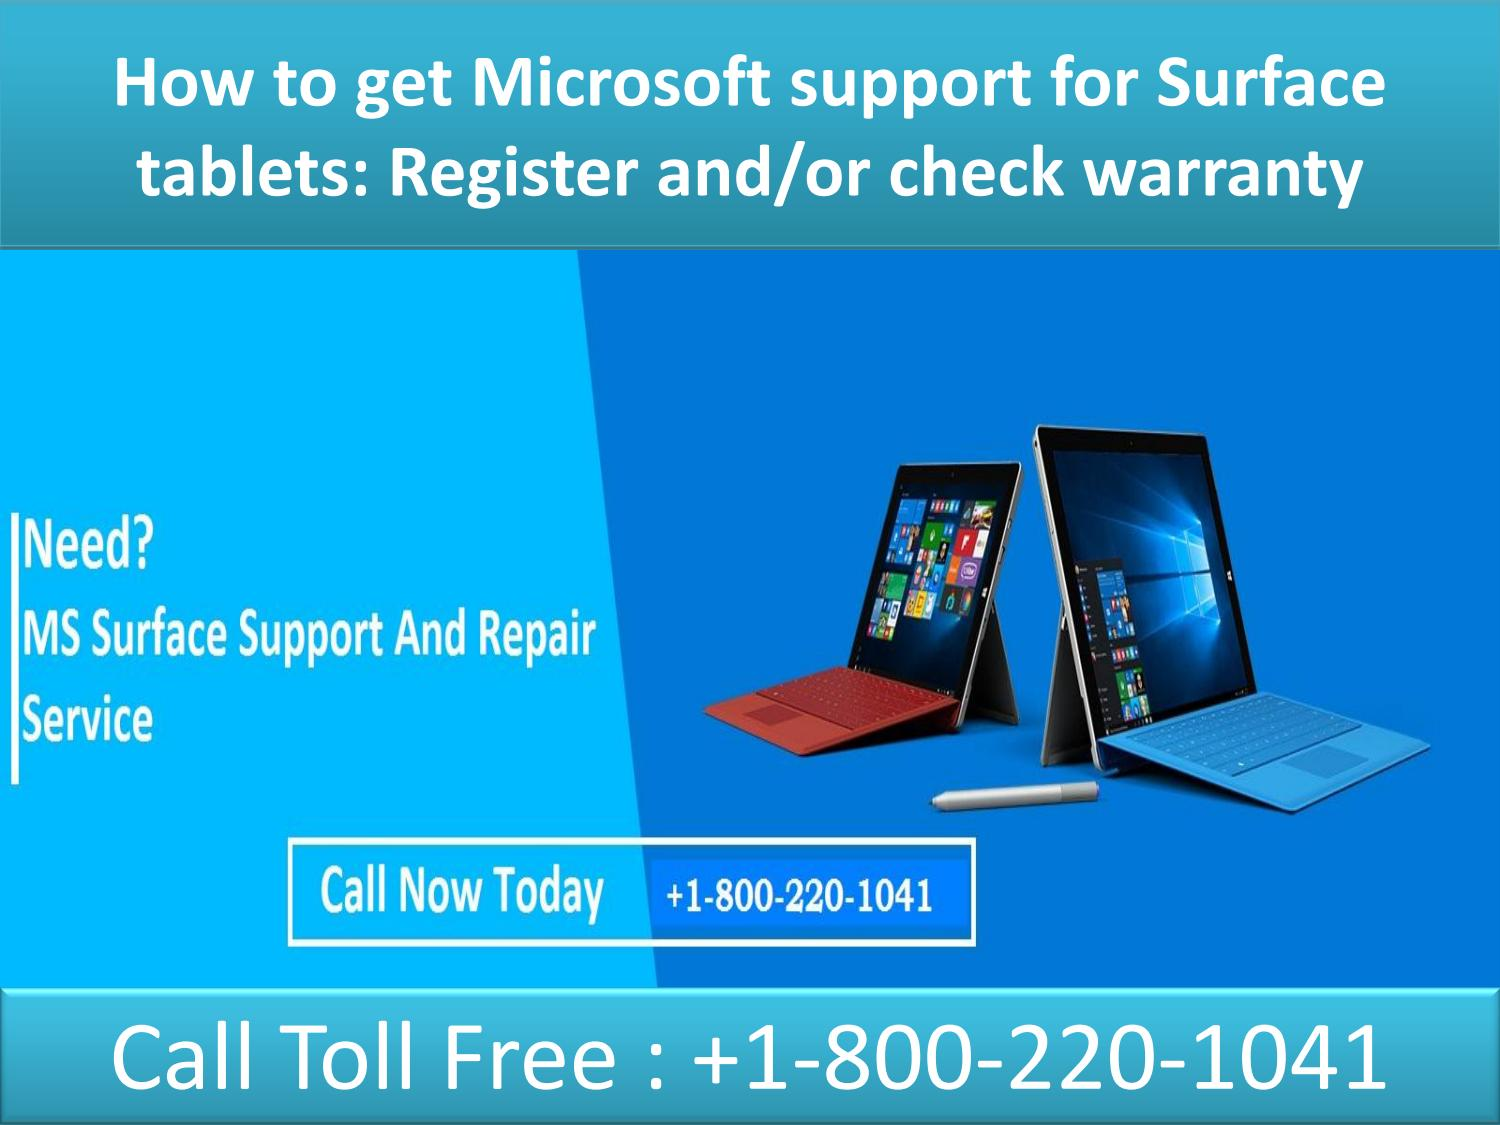 How To Get Microsoft Support For Surface Tablets 18002201041 By